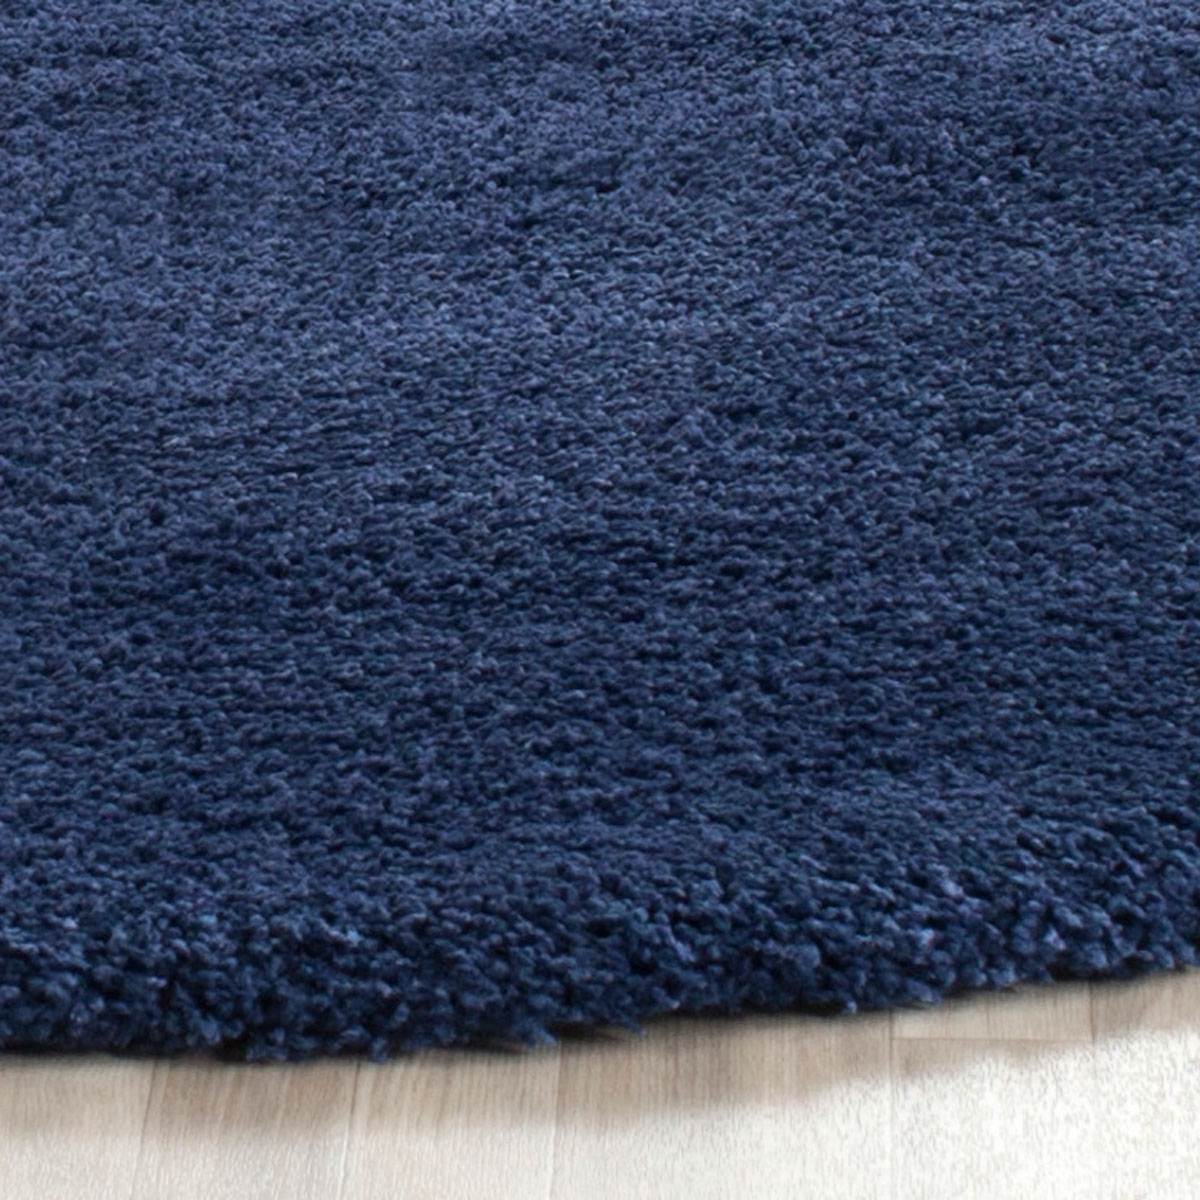 Bluer Than Blue - Wool Felt Oversized Sheet - 35% Wool Blend - 1 12x18 inch sheet. by National Nonwovens. $ $ 6 35 Prime. FREE Shipping on eligible orders. Only 3 left in stock - order soon. 5 out of 5 stars 1. Product Features 35% wool, 65% rayon blend is .